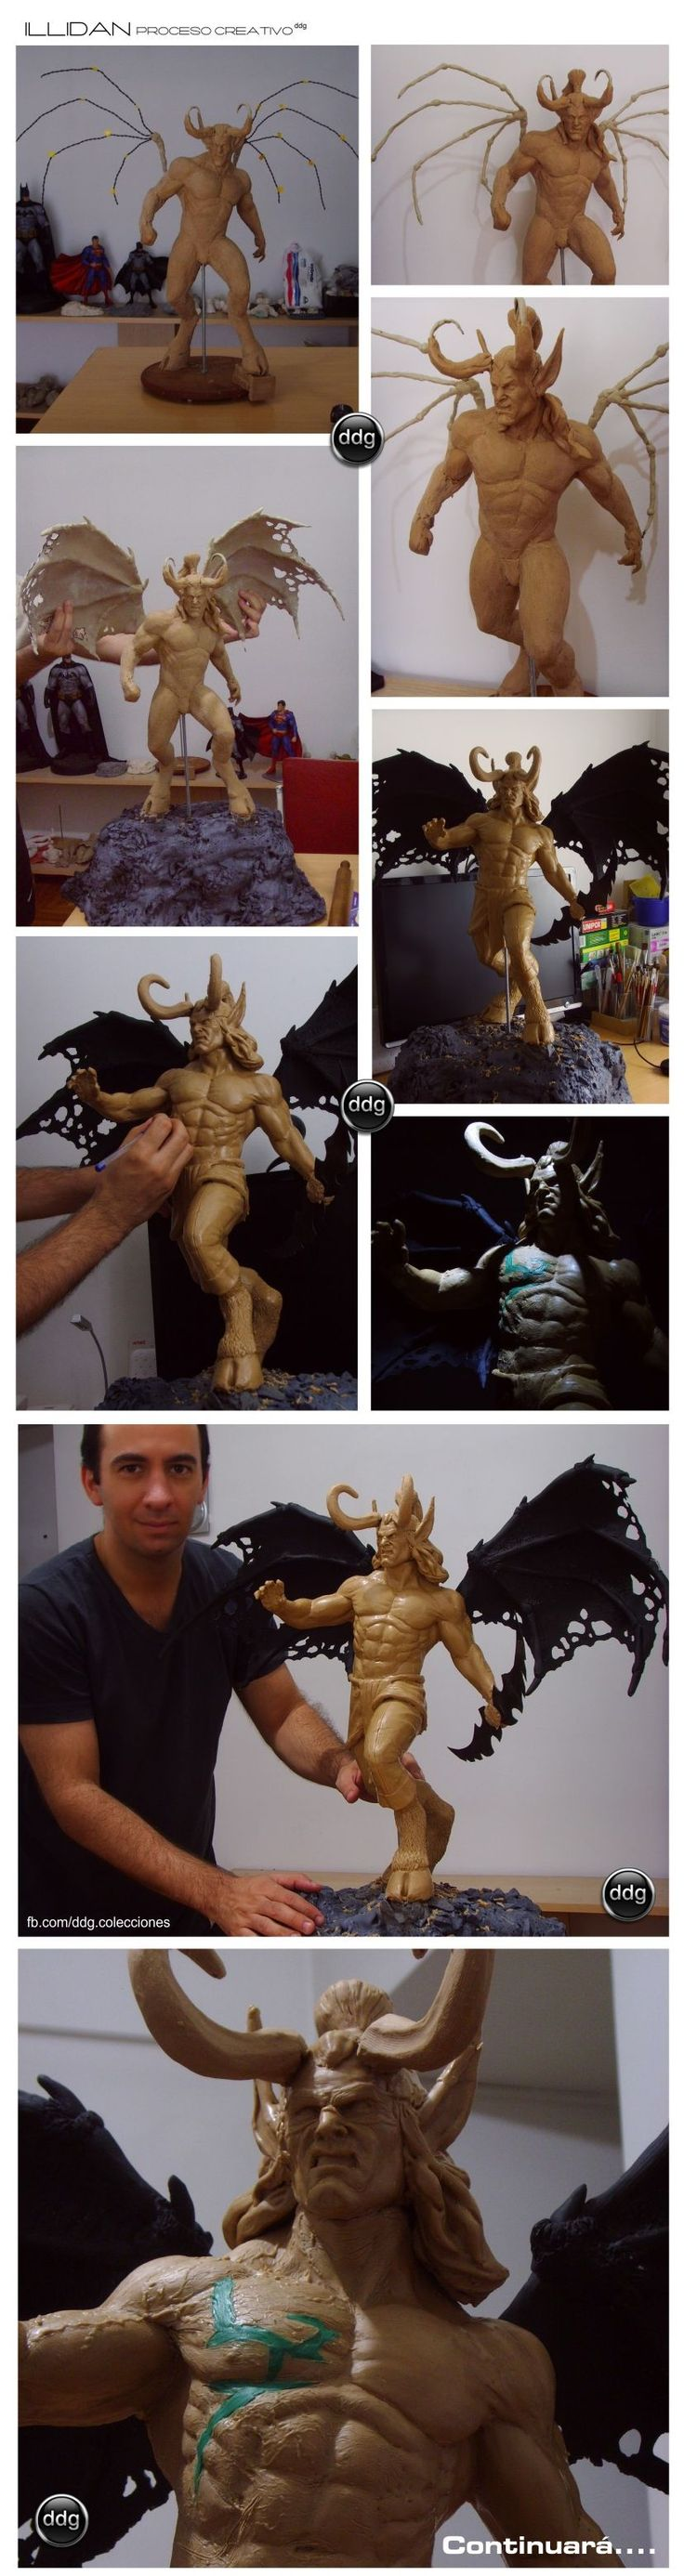 Illidan - Warcraft sculpt WIP by ddgcom.deviantart.com on @deviantART